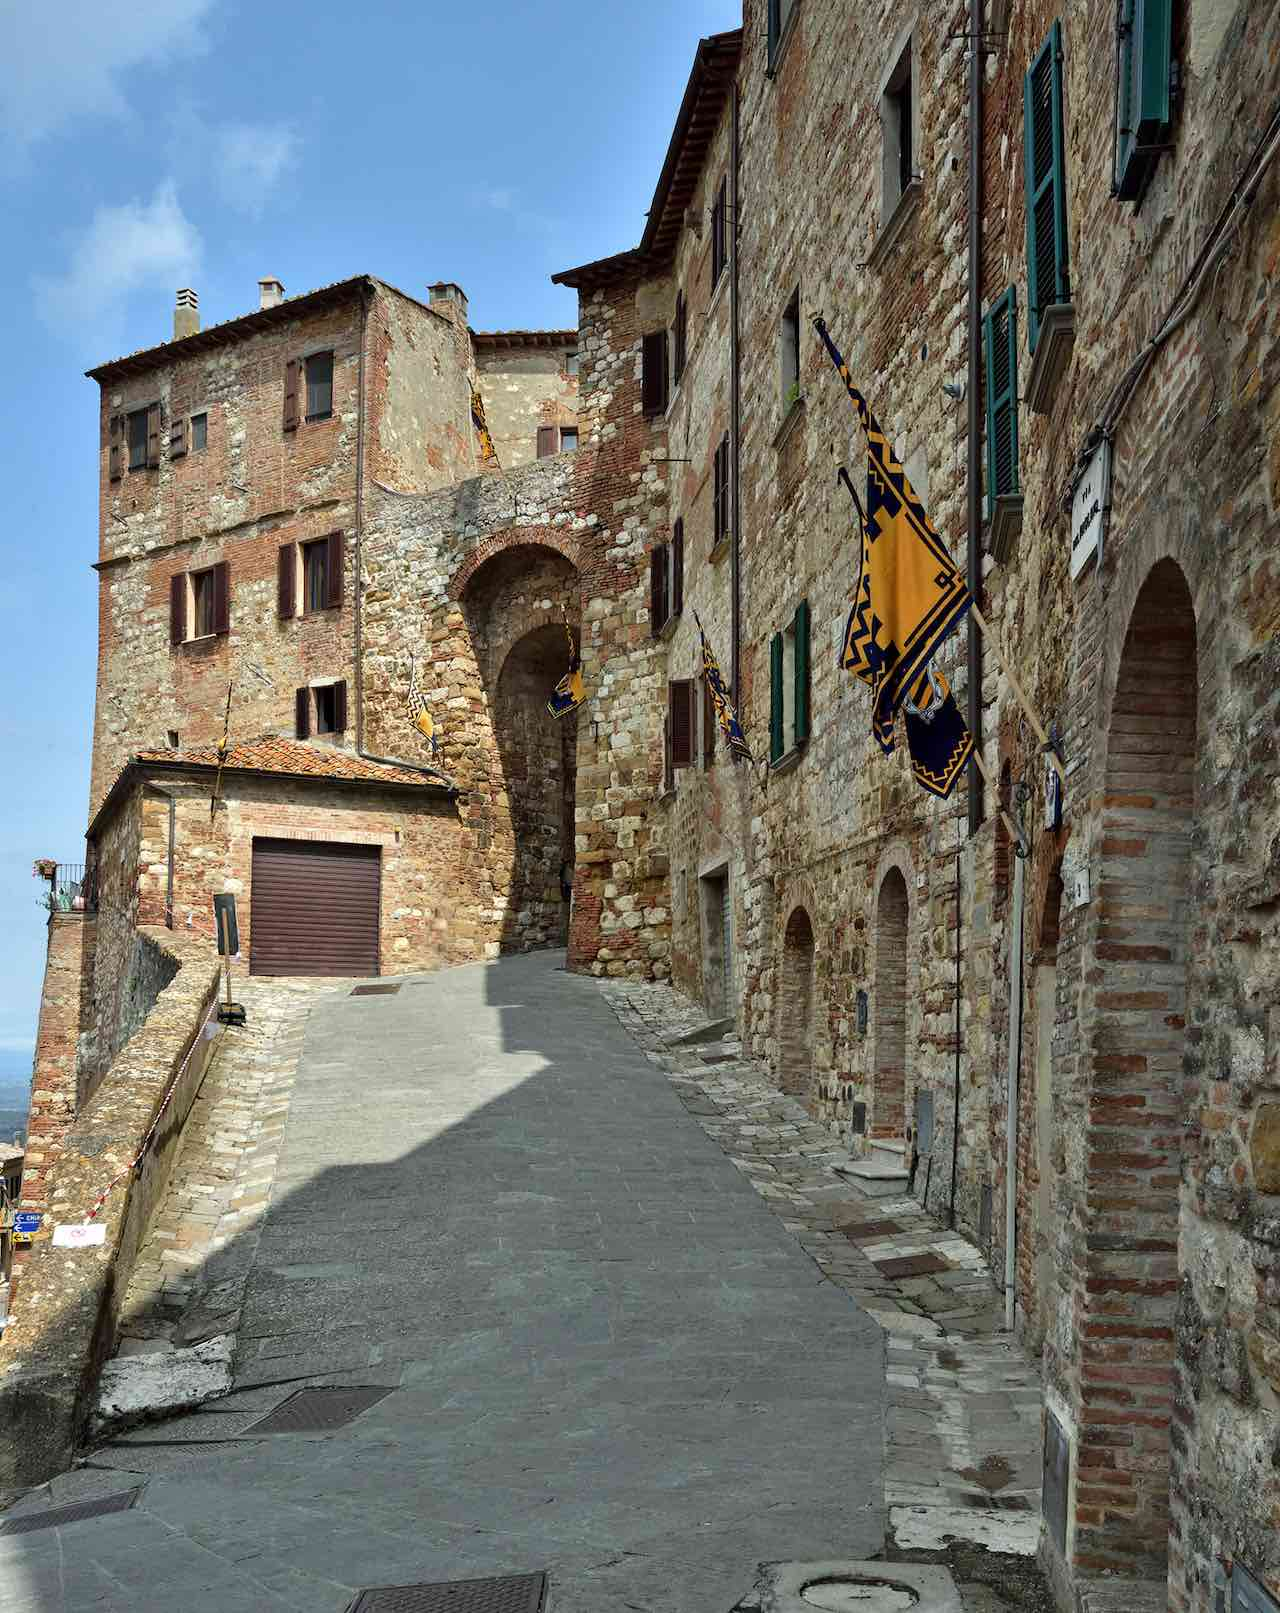 Streets of Montapulciano